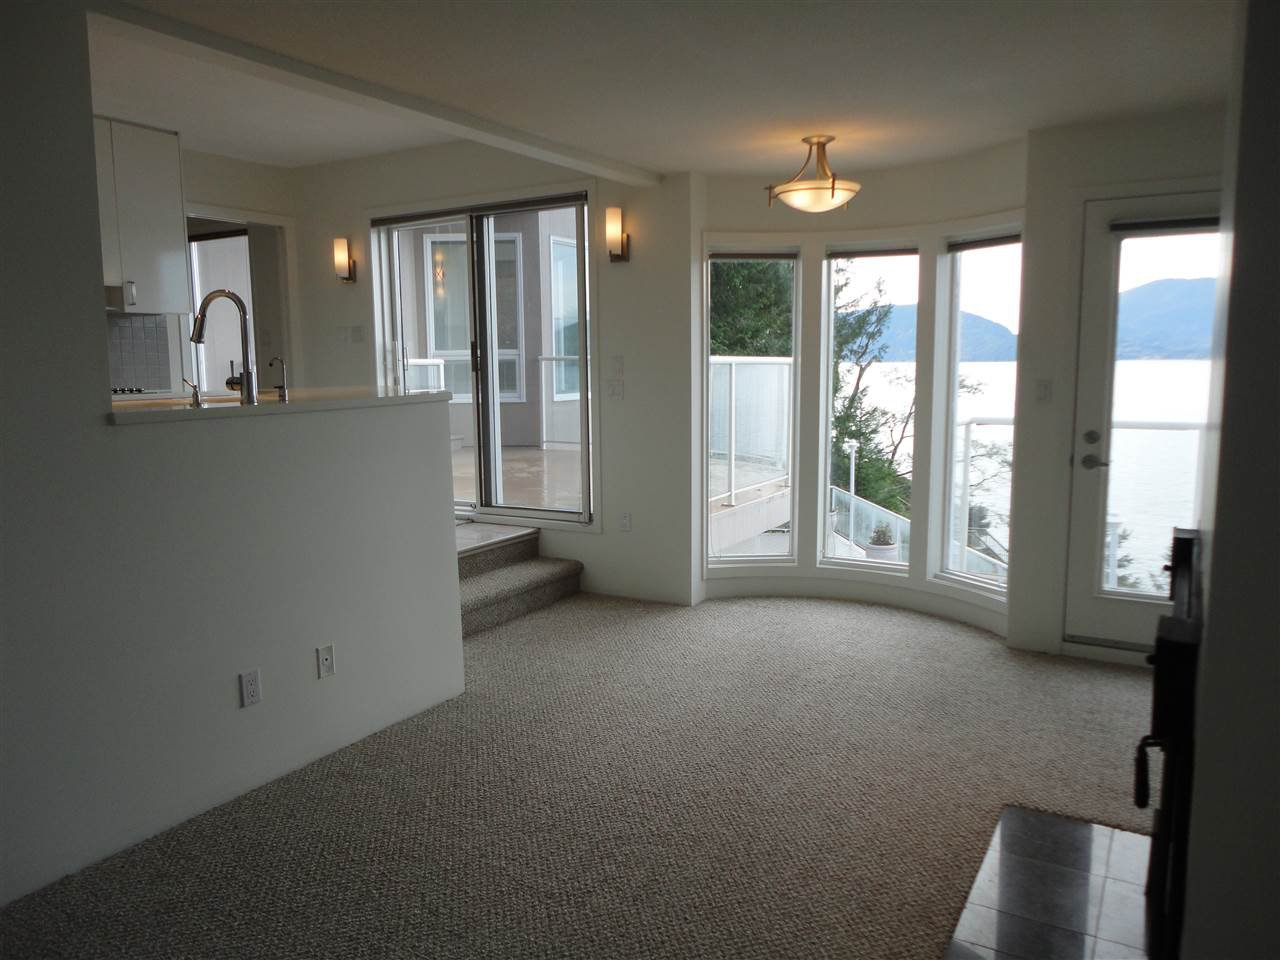 Photo 8: Photos: 8255 PASCO ROAD in West Vancouver: Howe Sound House for sale : MLS®# R2351856